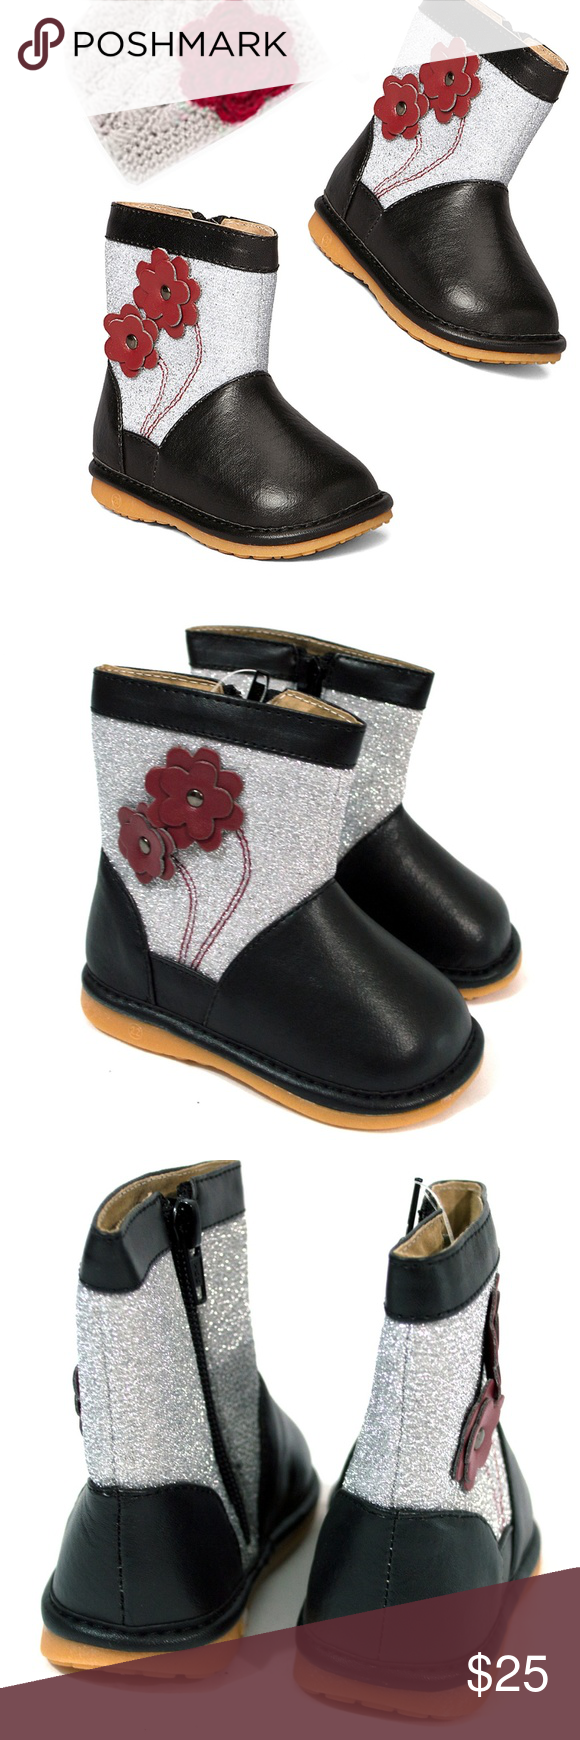 Silver & Black Floral Glitter Squeaker Boot 6, 7 These ...